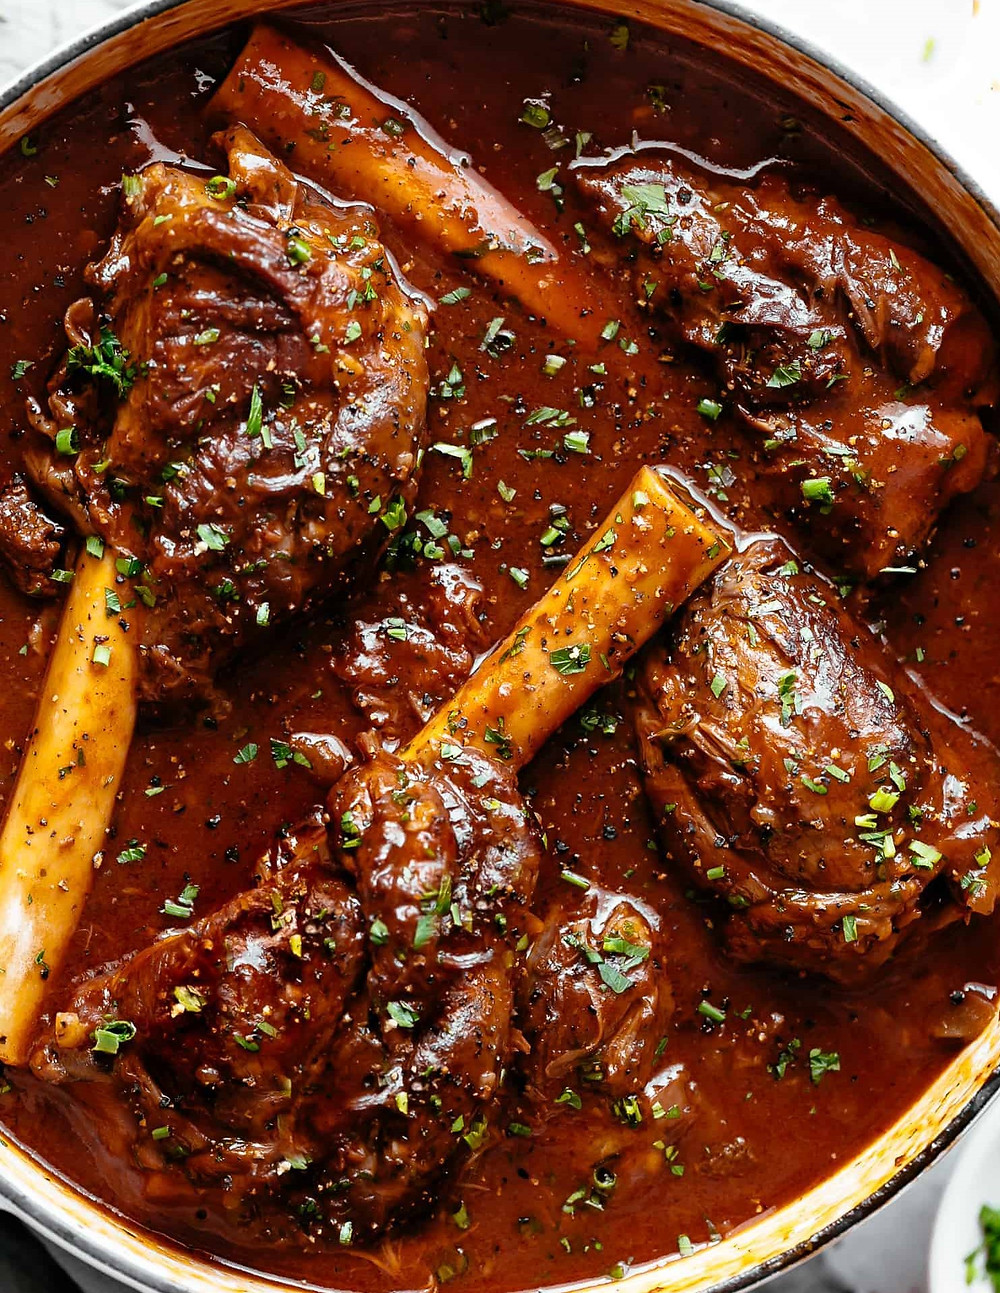 lamb shank in stew pot